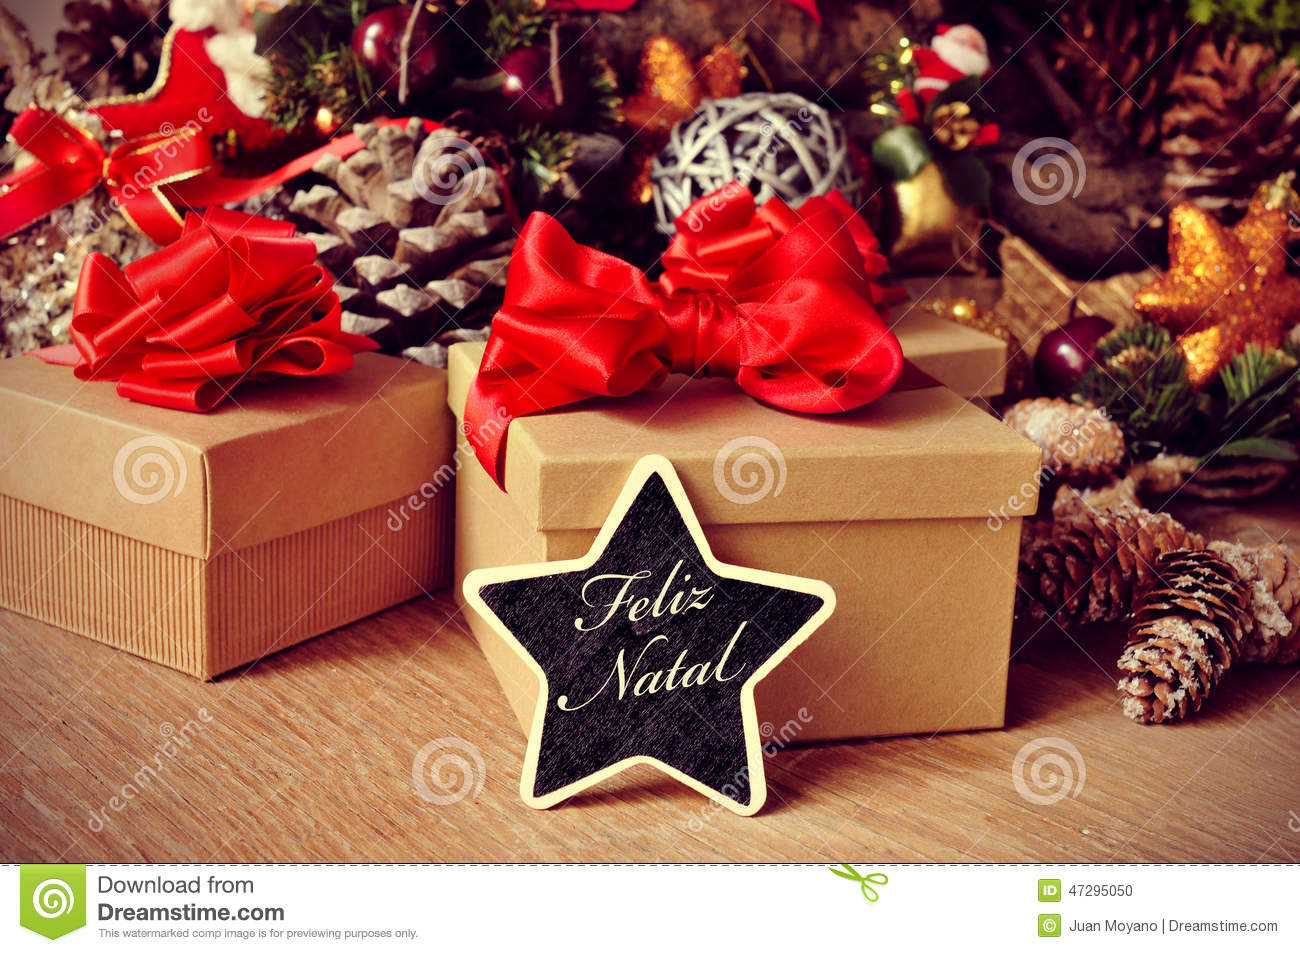 Feliz Natal, Merry Christmas In Portuguese Stock Photo - Image ...